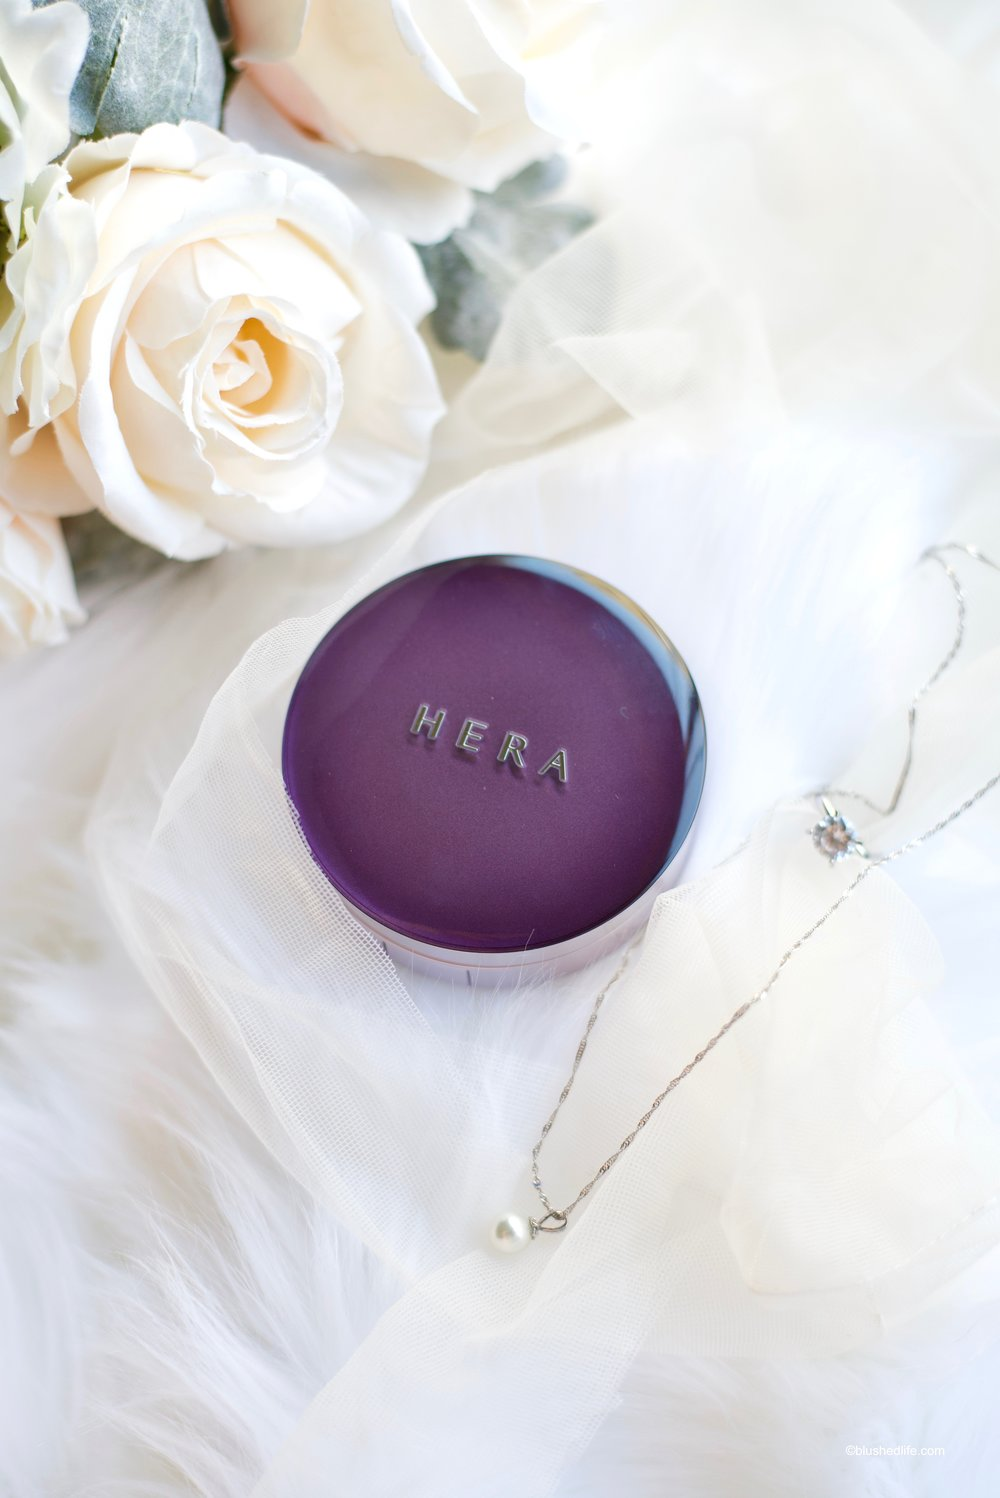 Hera UV Mist Cushion Dry Skin Acne Skin Review_DSC_3625.jpg